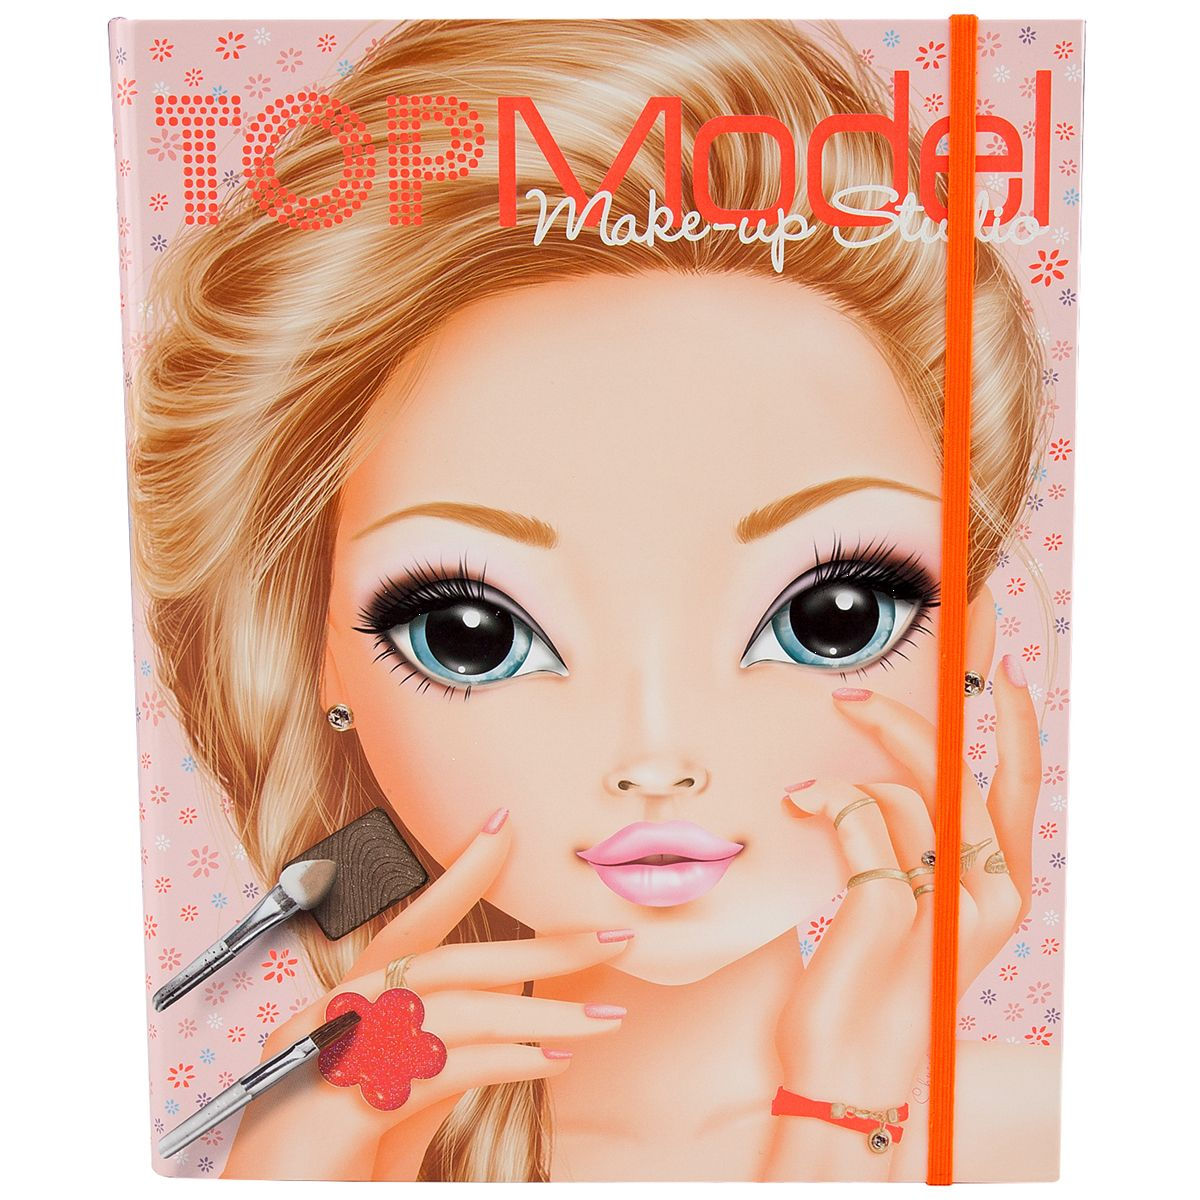 Mode Top Model Coloriage Fille.Album De Coloriage Top Model Maquillage Jeux Educatifs